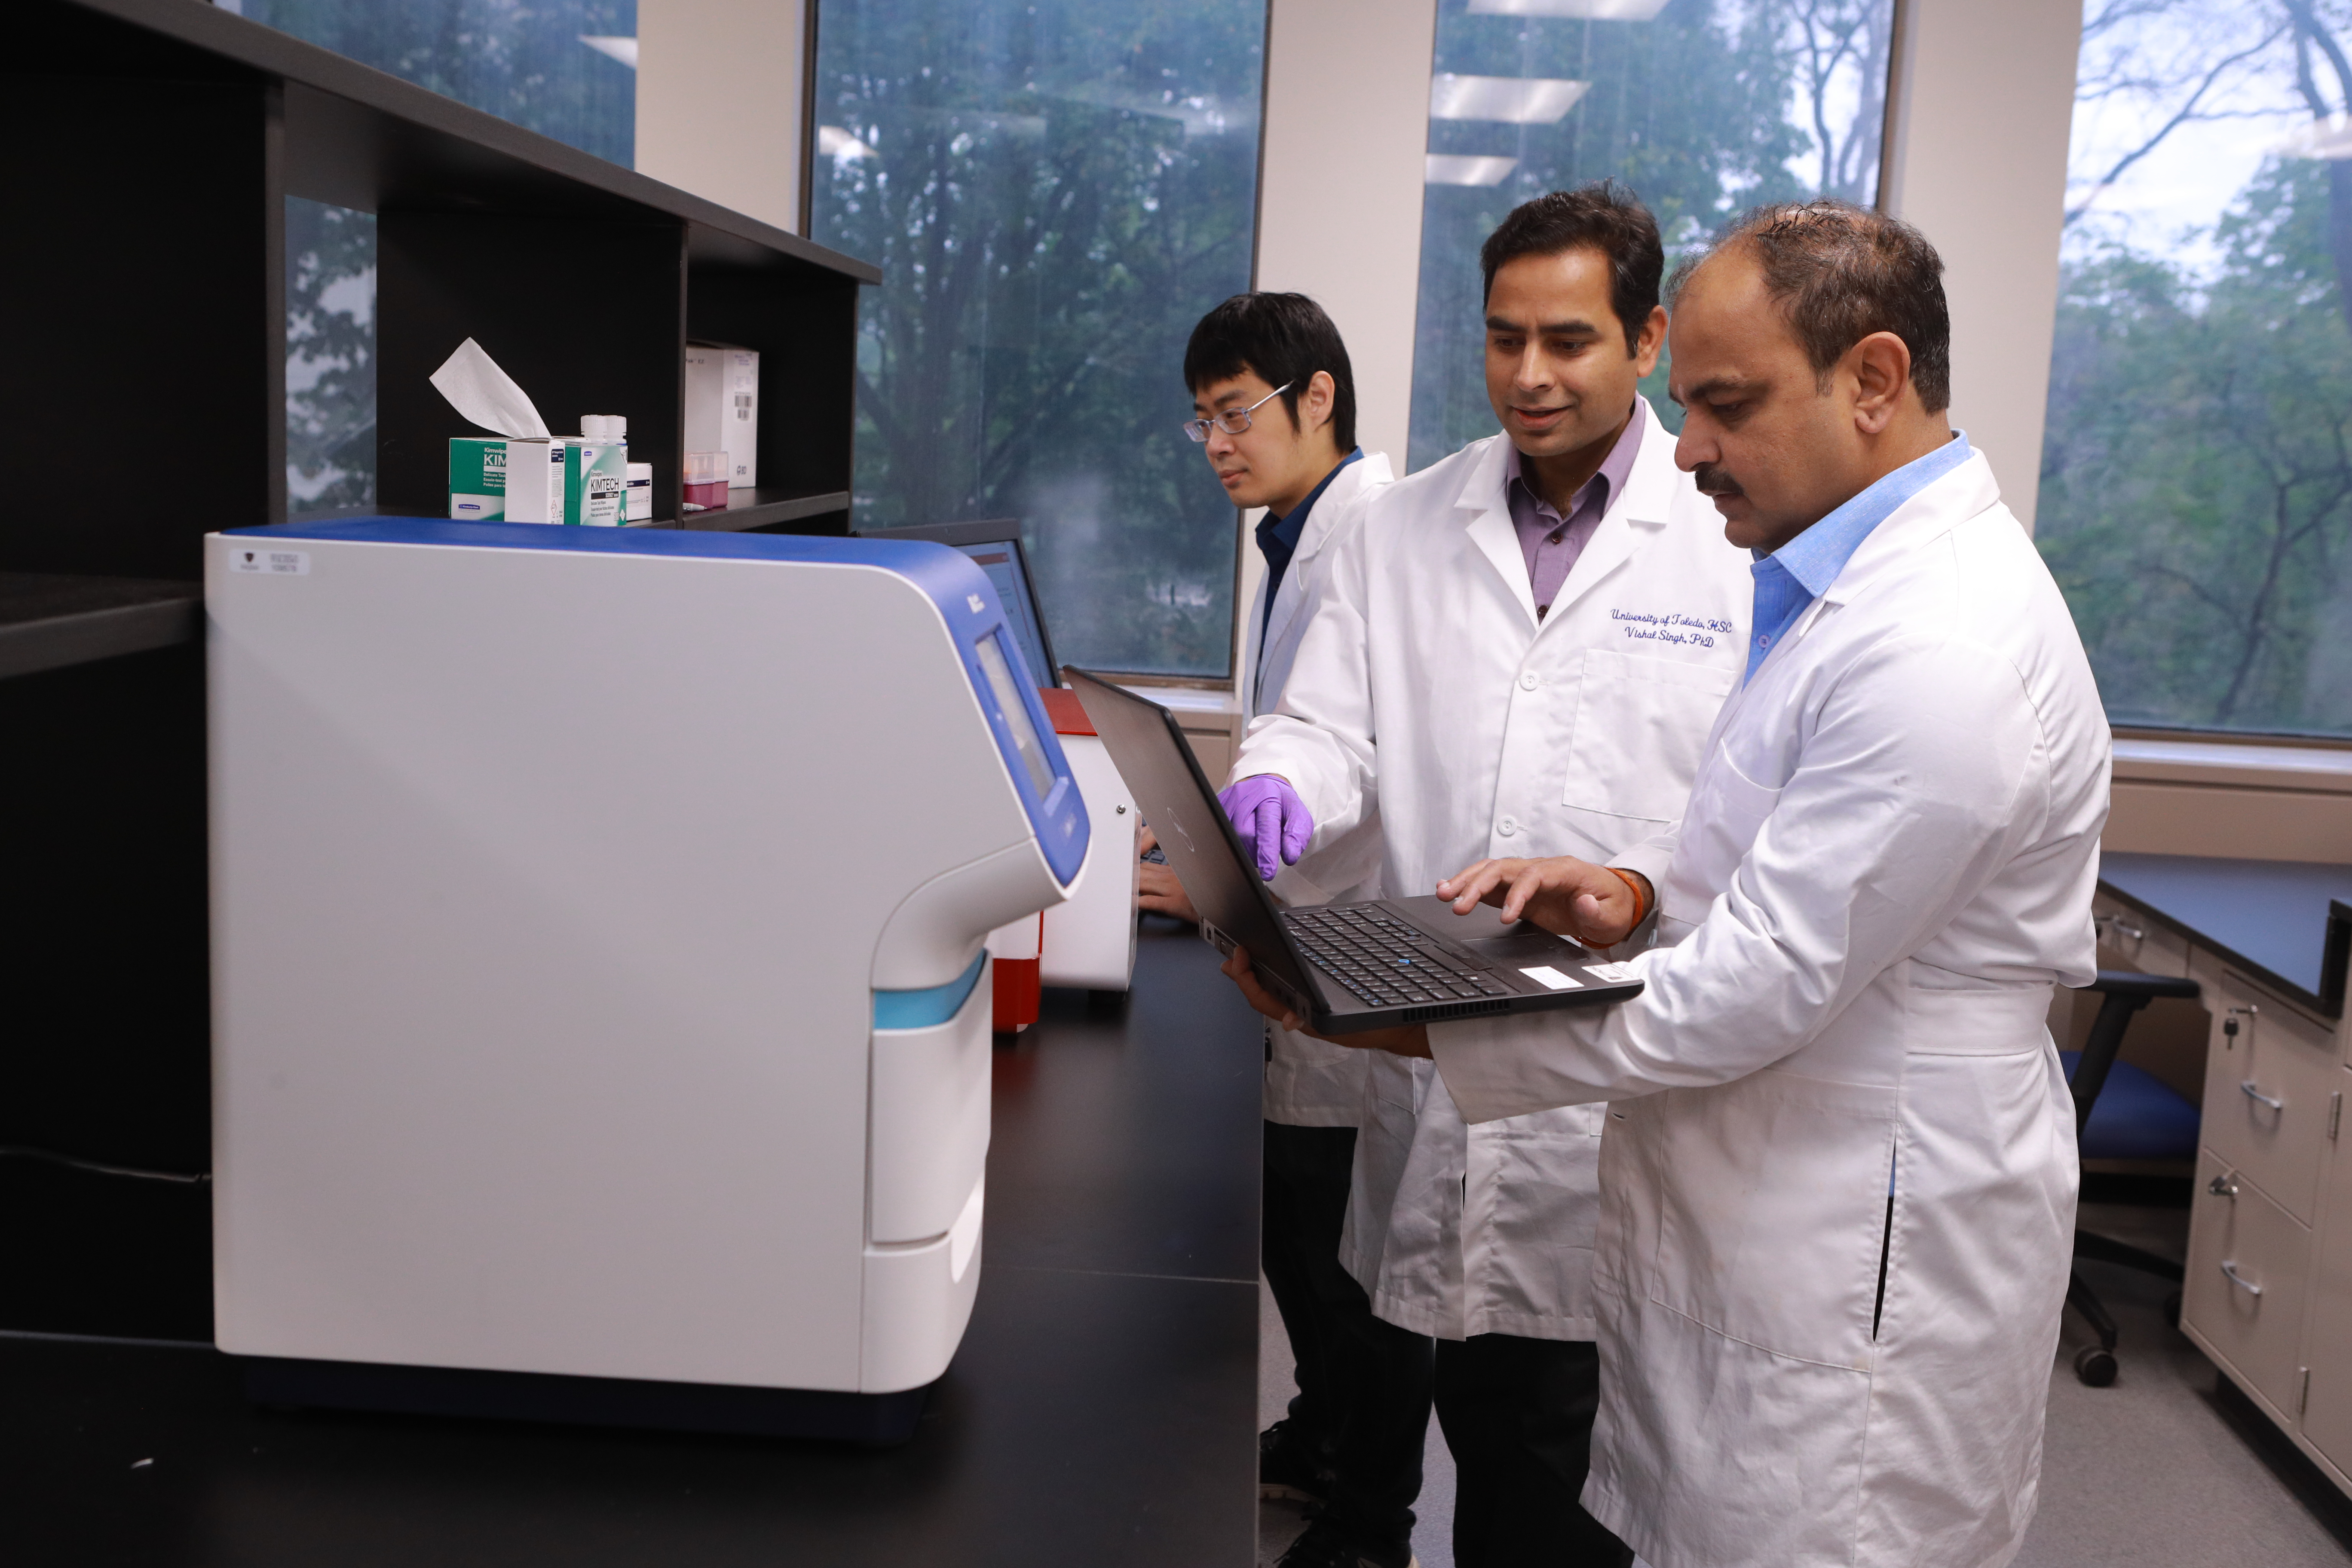 University of Toledo Researchers in the Lab